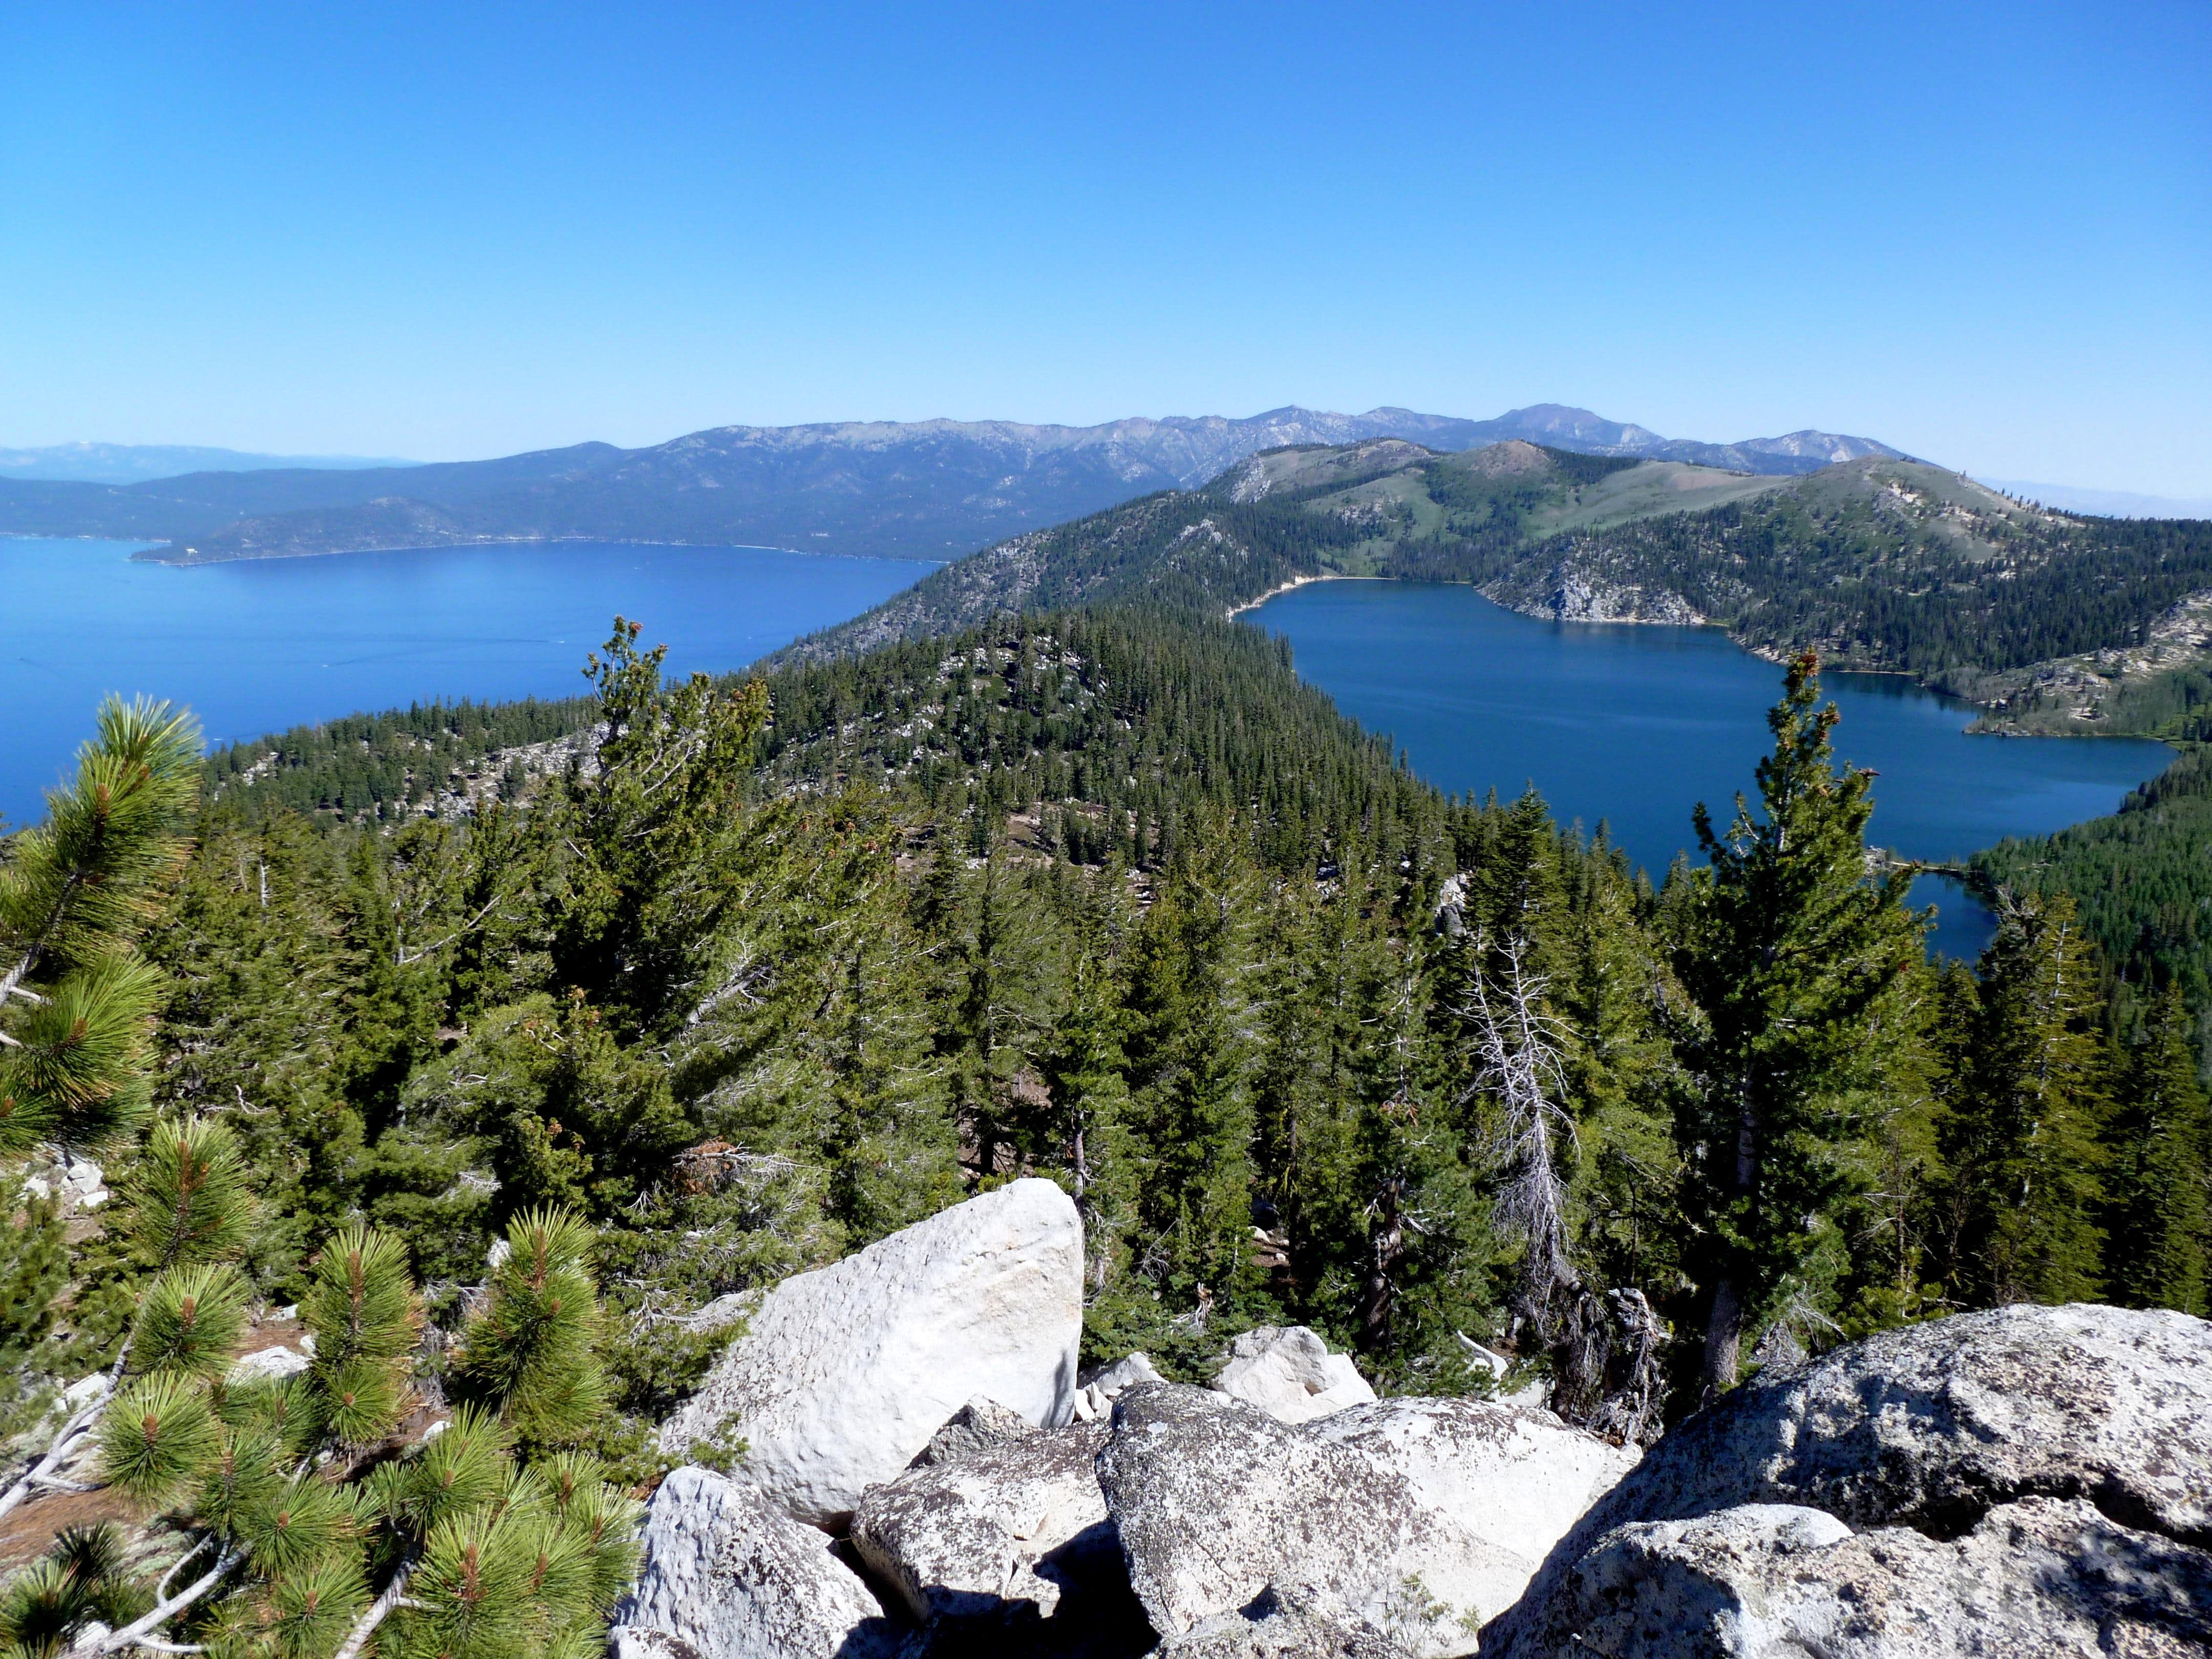 Peak 8738 – East Tahoe